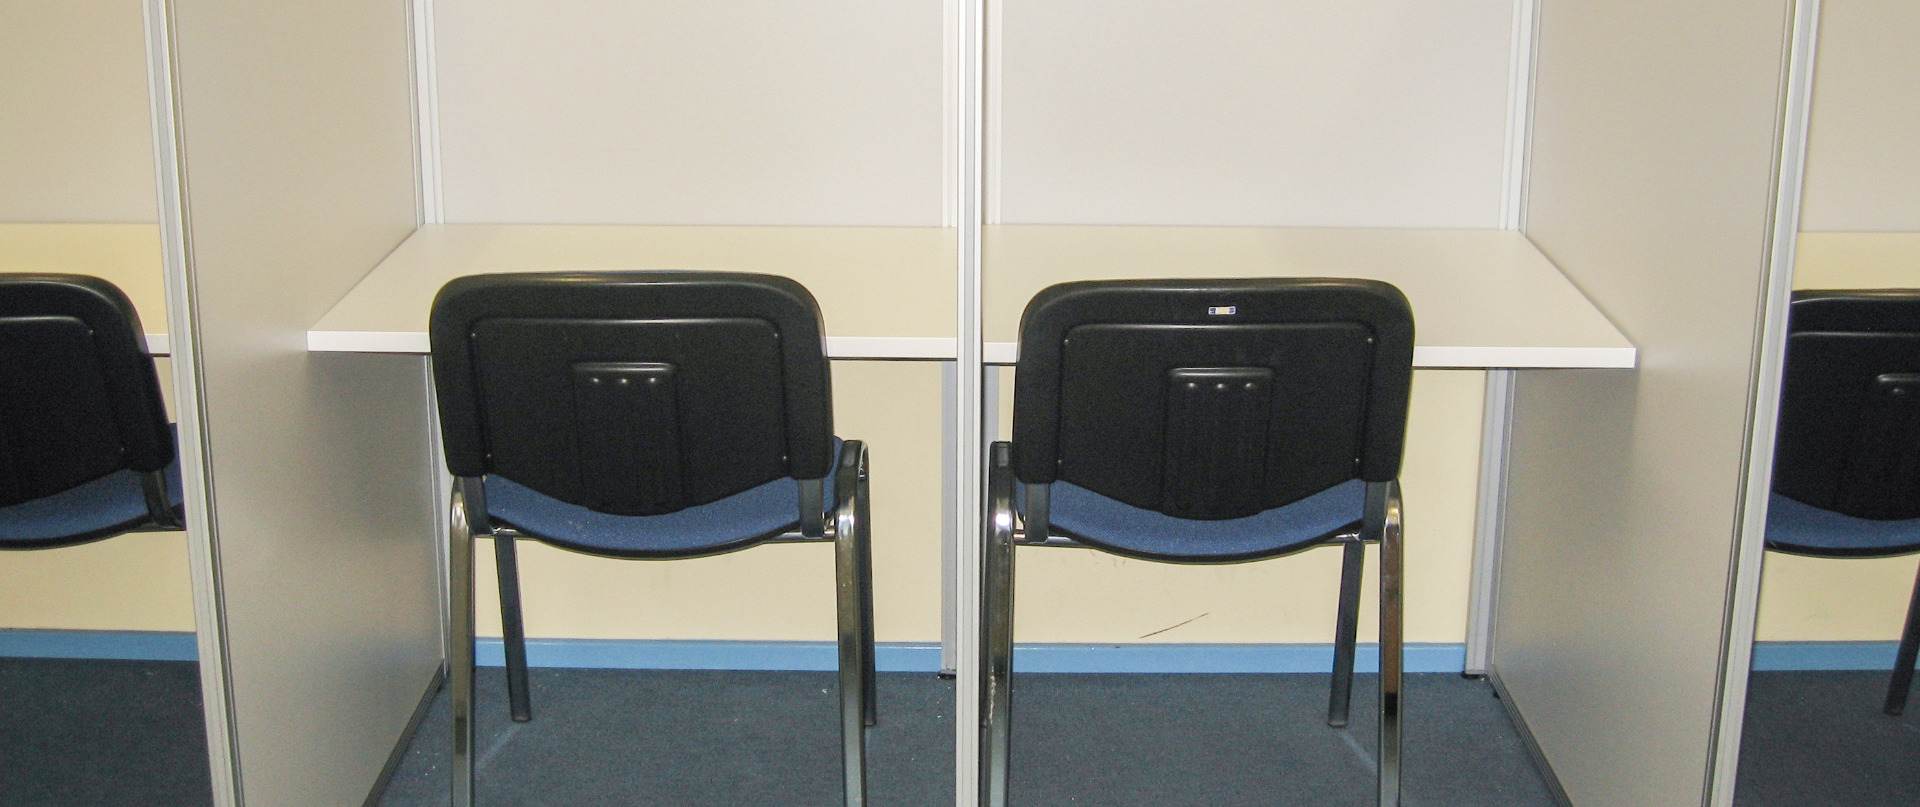 Queens School study booths